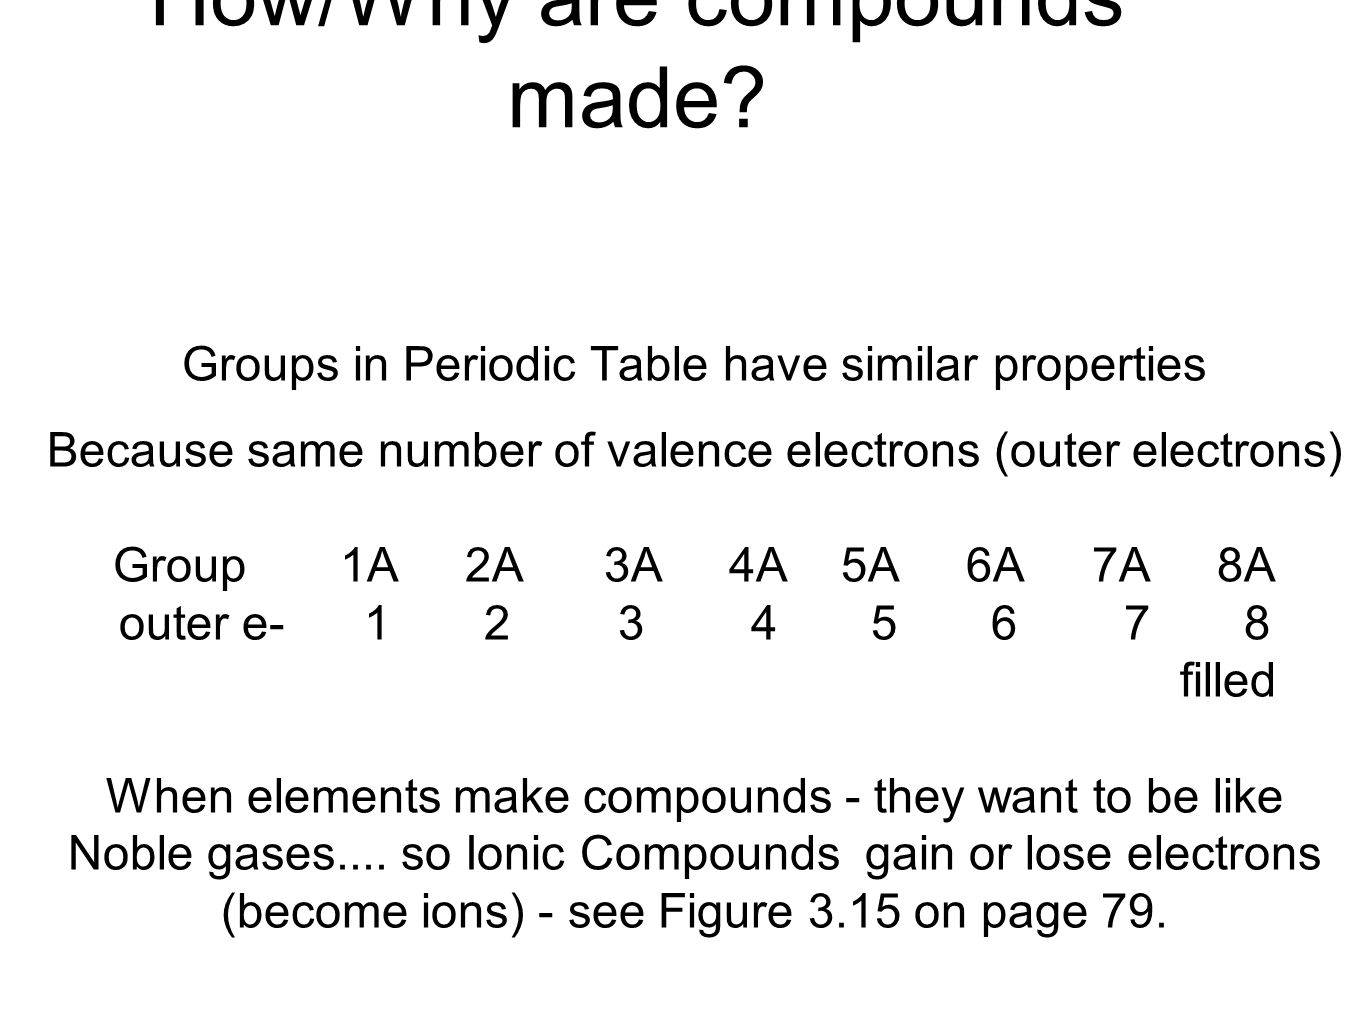 Nomenclature naming compounds chpt 4 ppt download 2 howwhy are compounds made groups in periodic table gamestrikefo Gallery